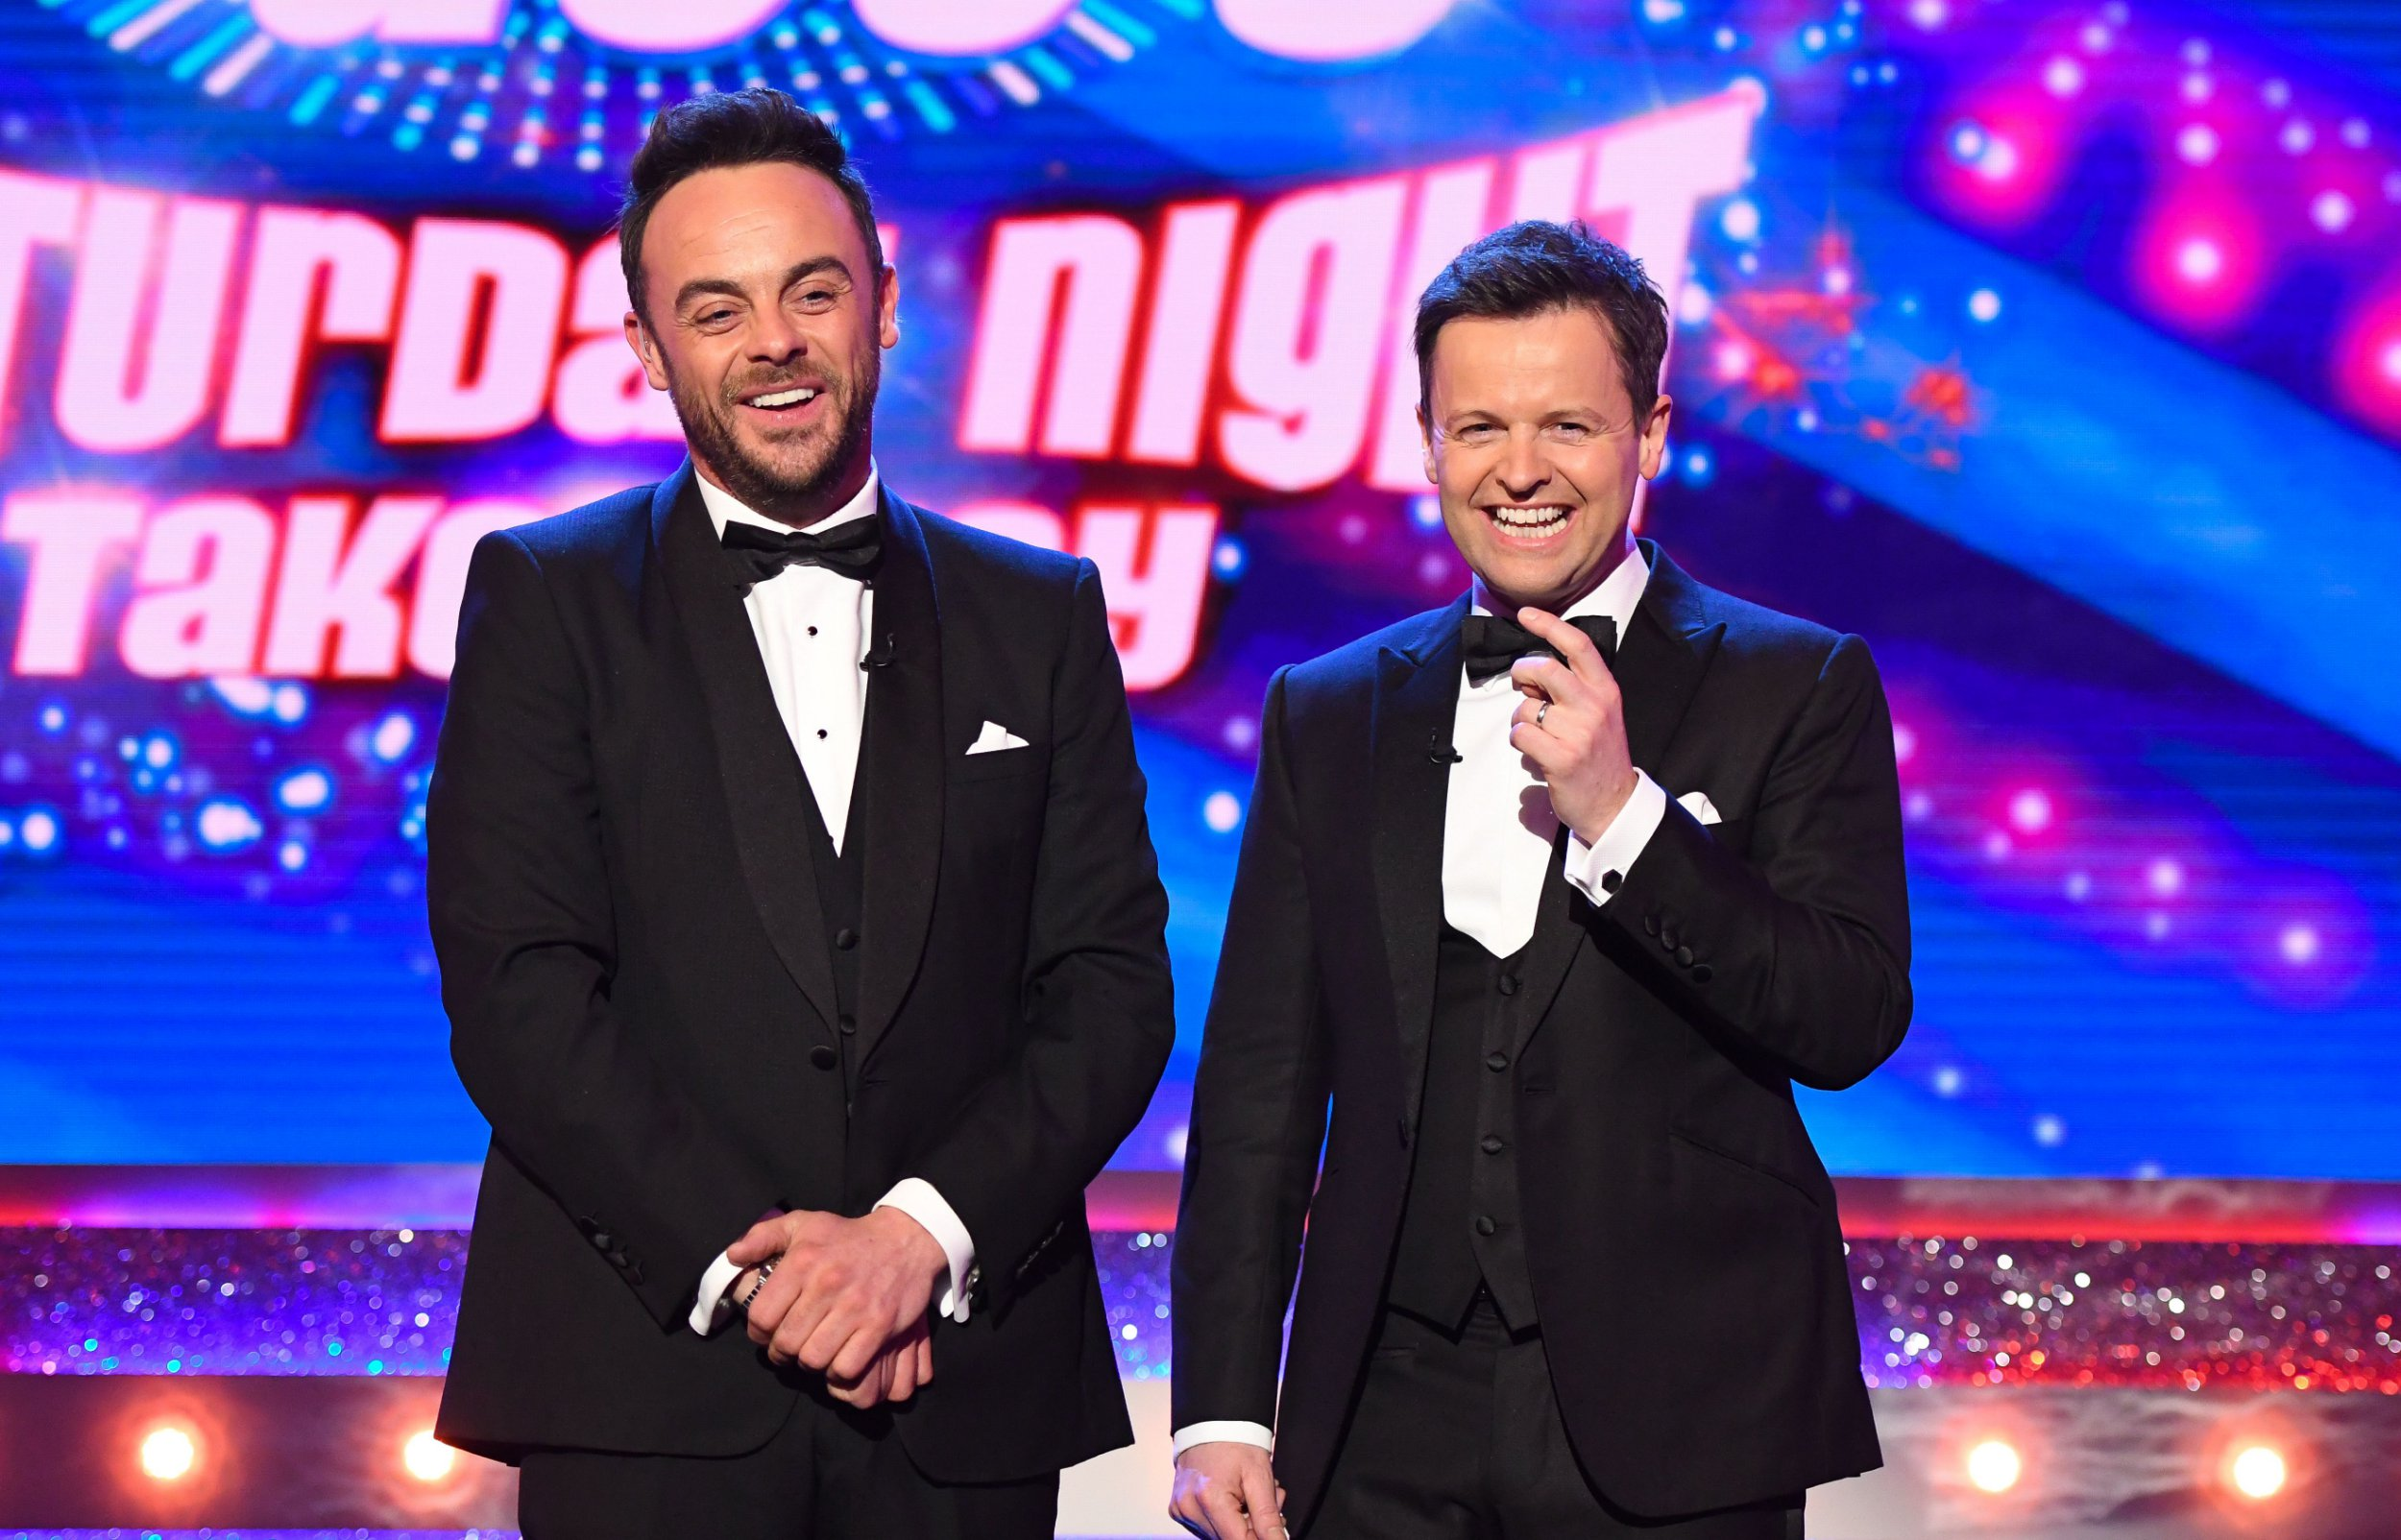 Who is hosting Saturday Night Takeaway with Dec and what celebrity guests are on the show this weekend?